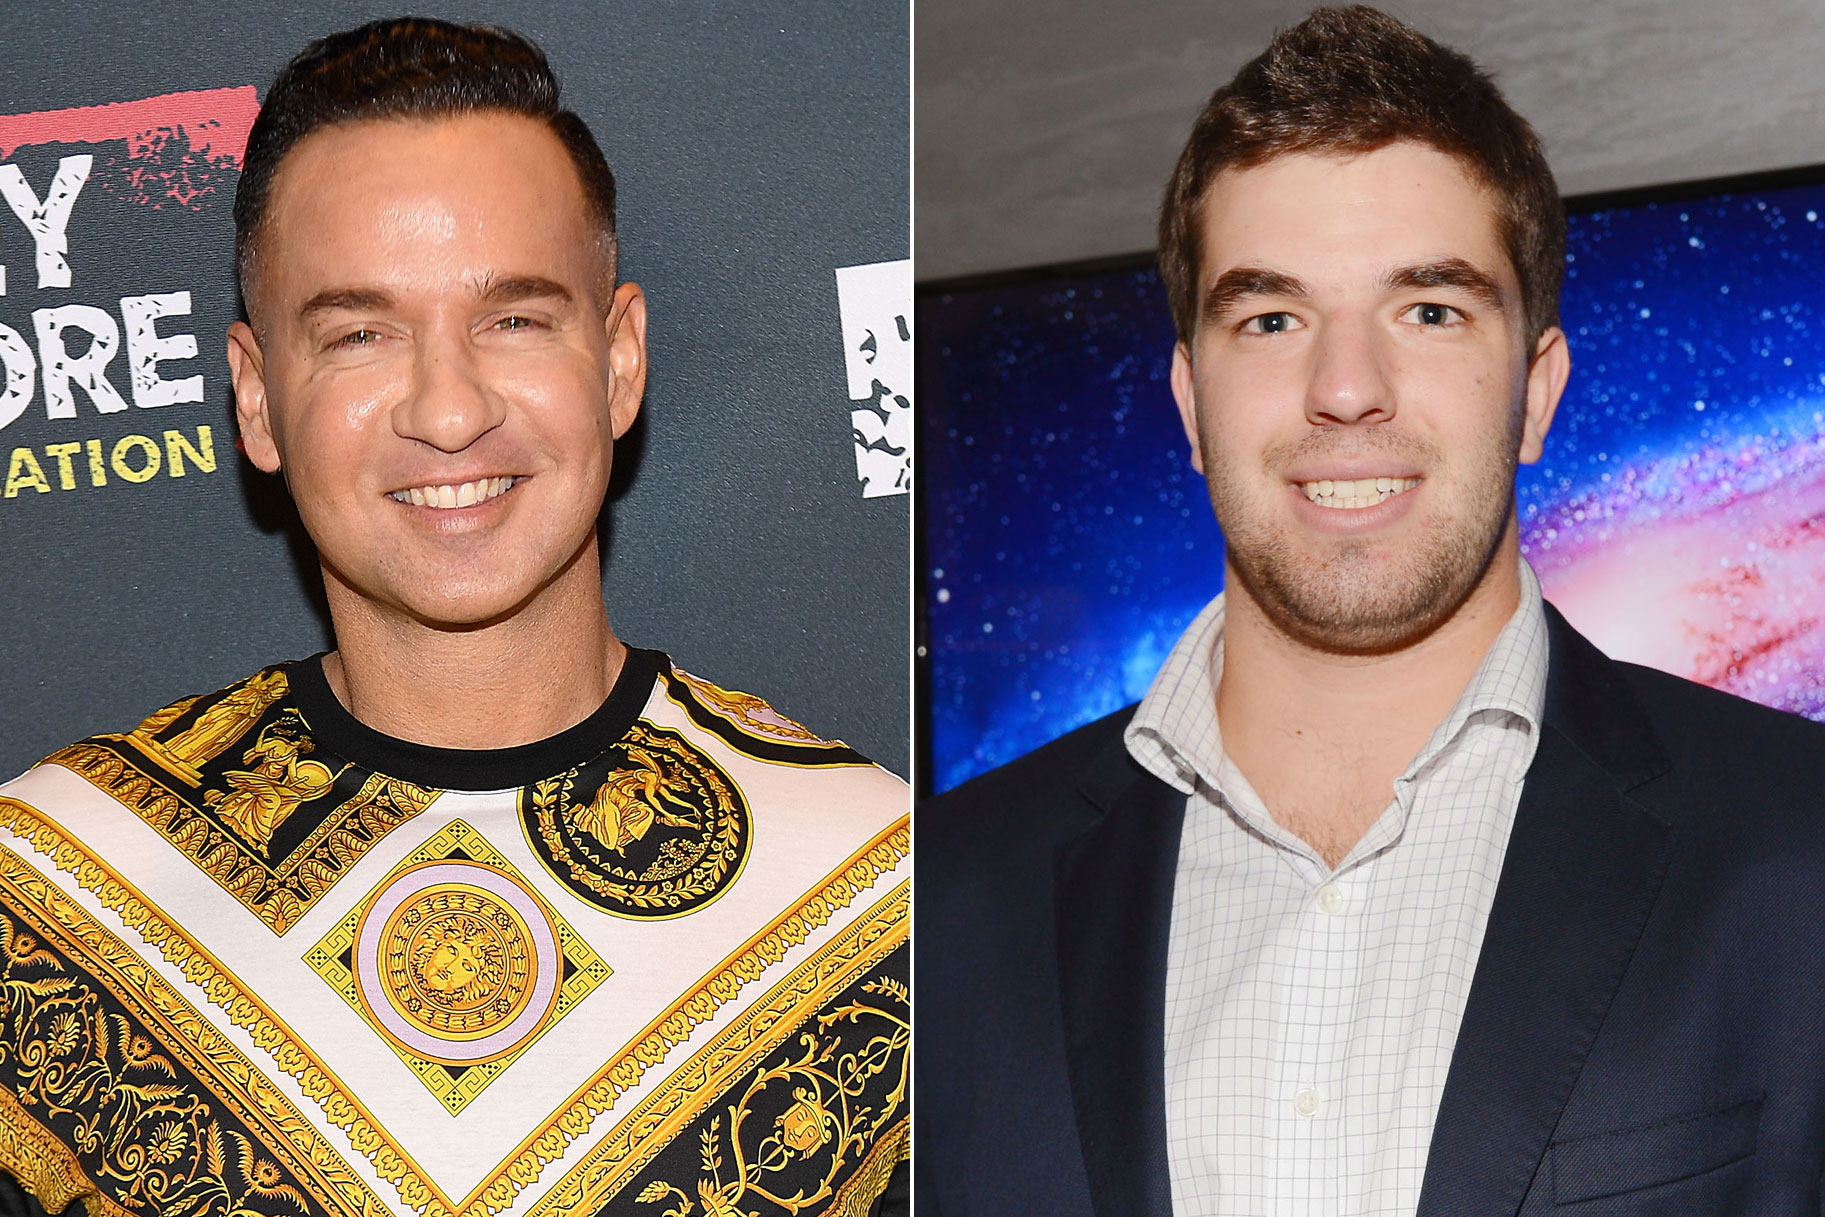 Mike 'The Situation' Sorrentino and Billy McFarland